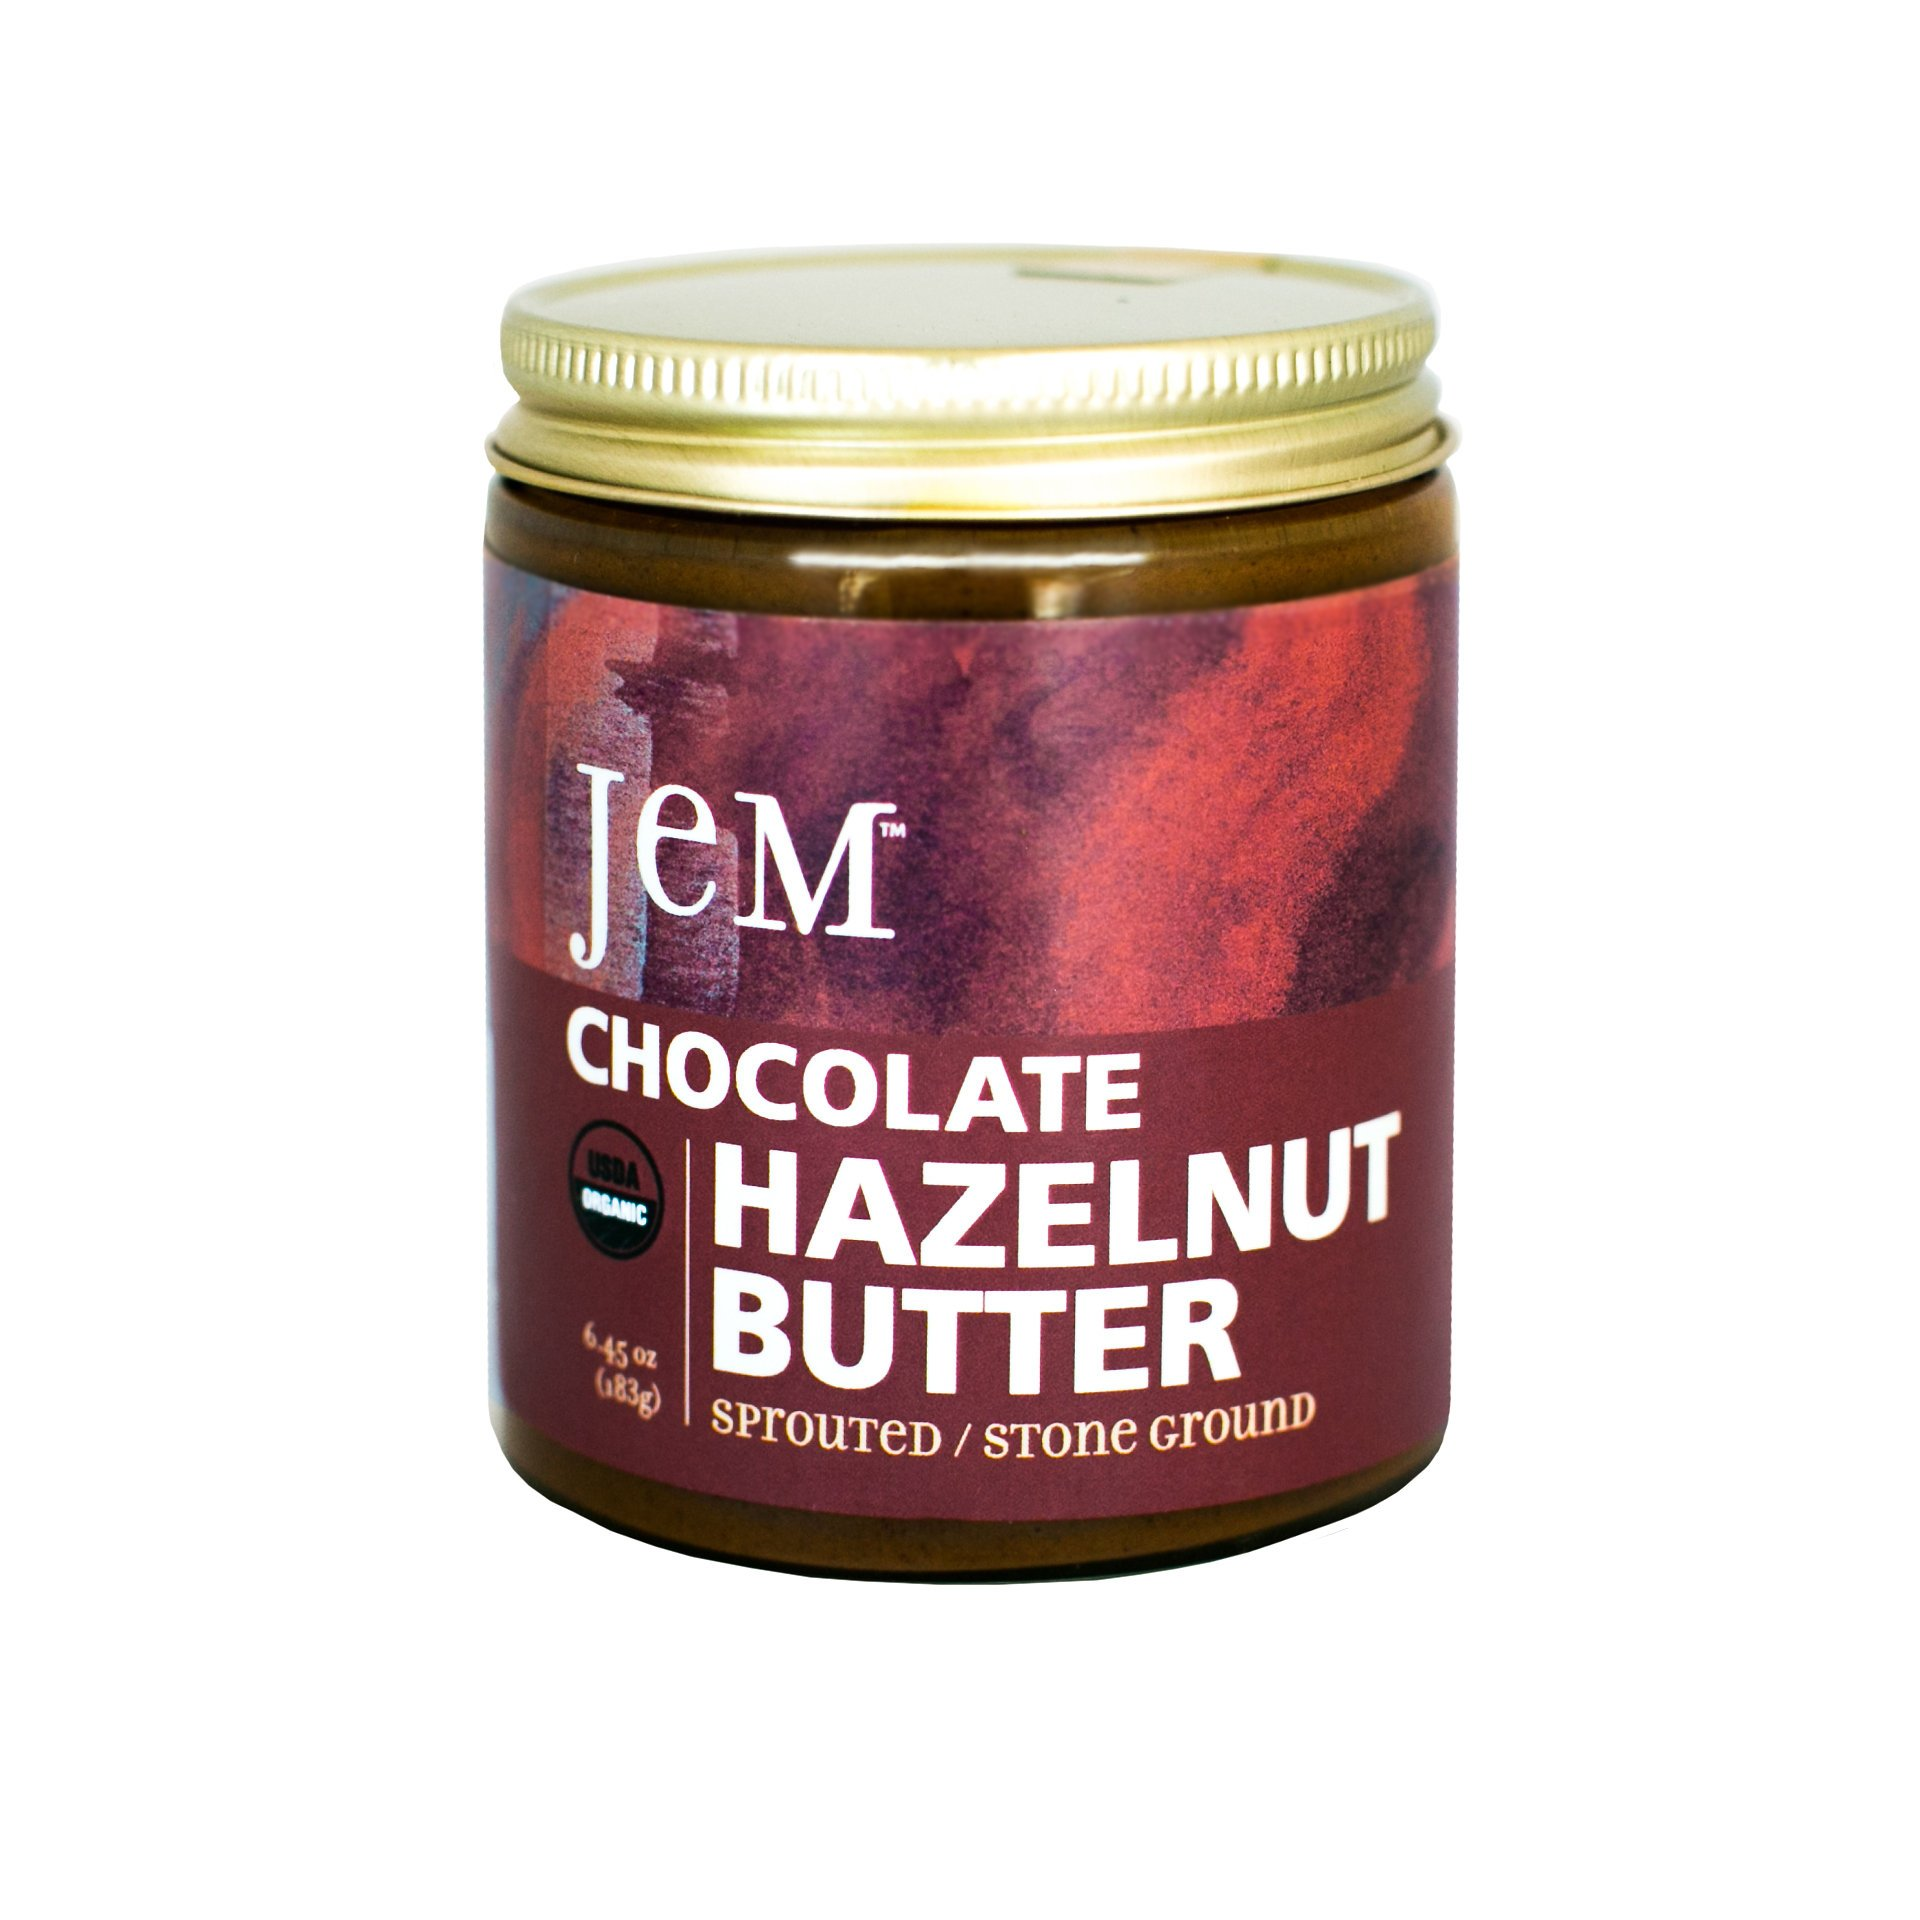 JEM - USDA Certified Organic Chocolate Hazelnut Butter Spread, Vegan, NON-GMO - 6 oz by JEM Organics